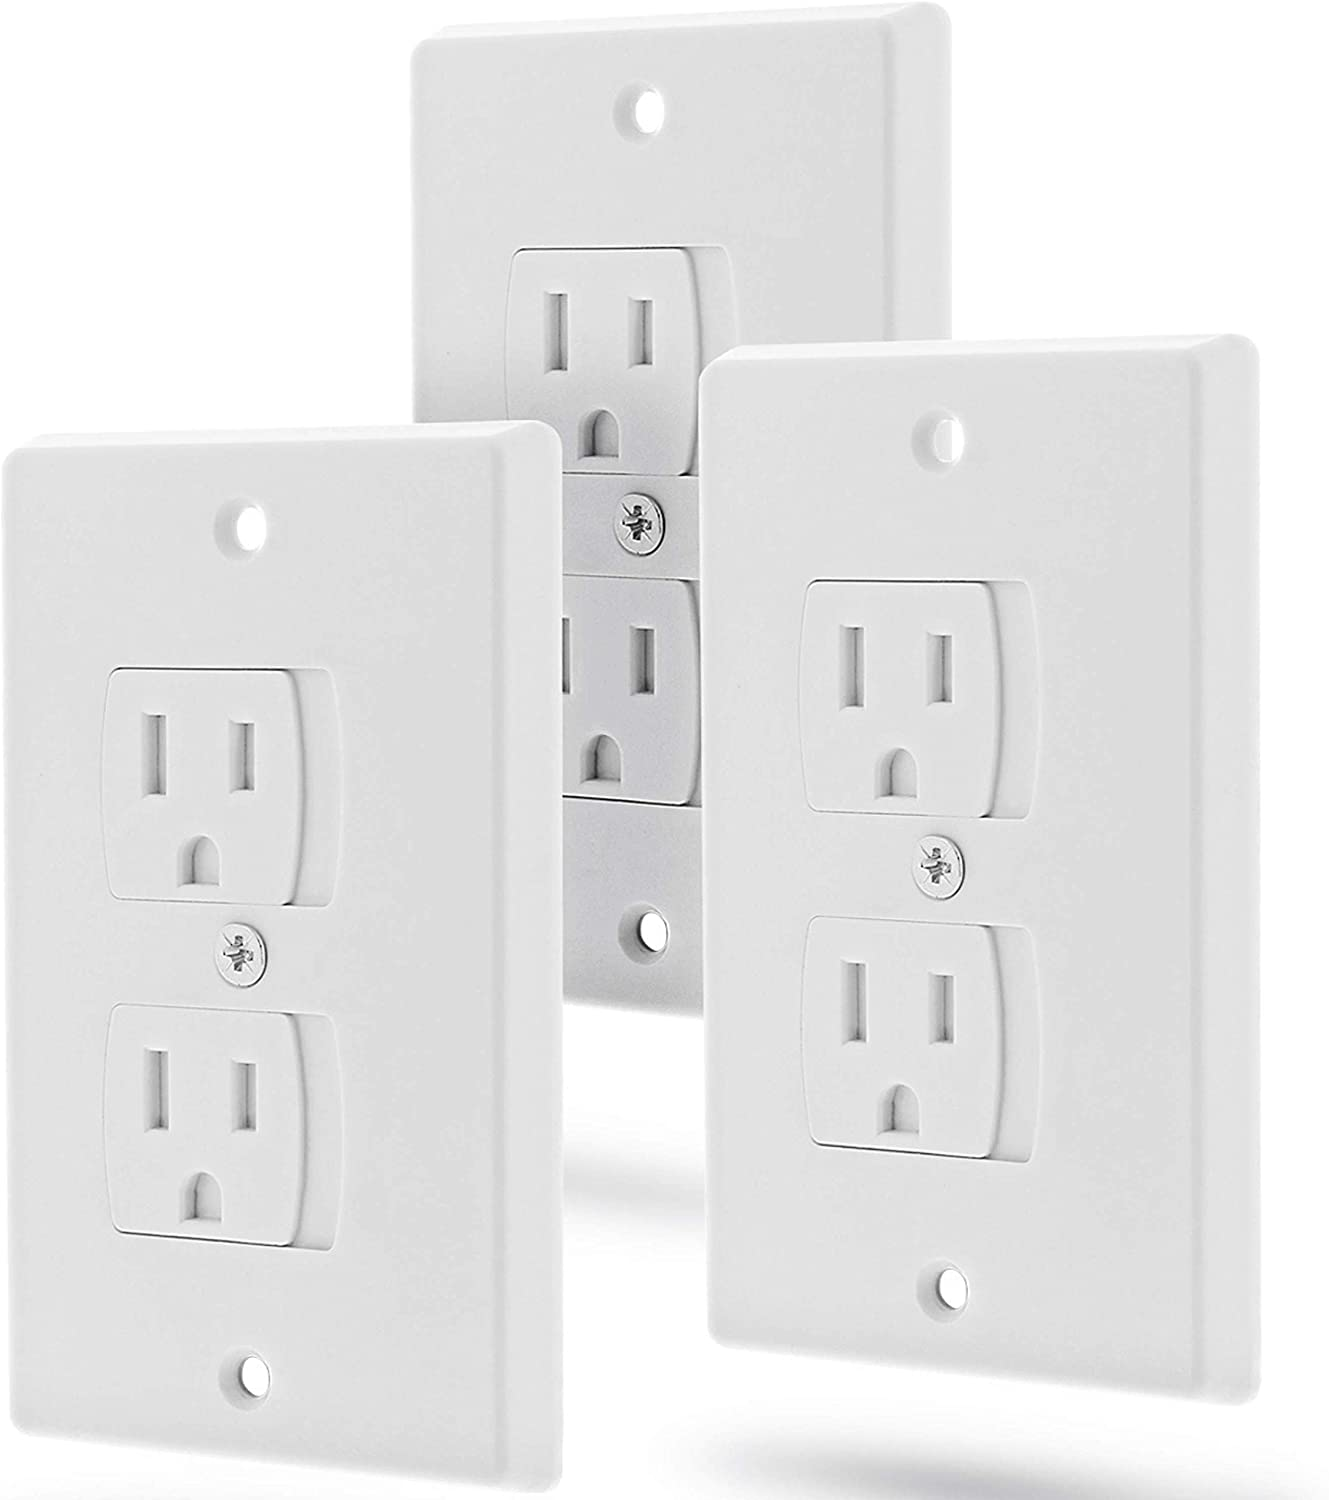 Self Closing Outlet Covers by Standard 6 Pack | Baby Proof Outlet Covers Baby Outlet Cover Outlet Covers Self-Closing Baby Proofing Electrical Outlet Cover Baby Proofing outlet Covers Baby Proofing